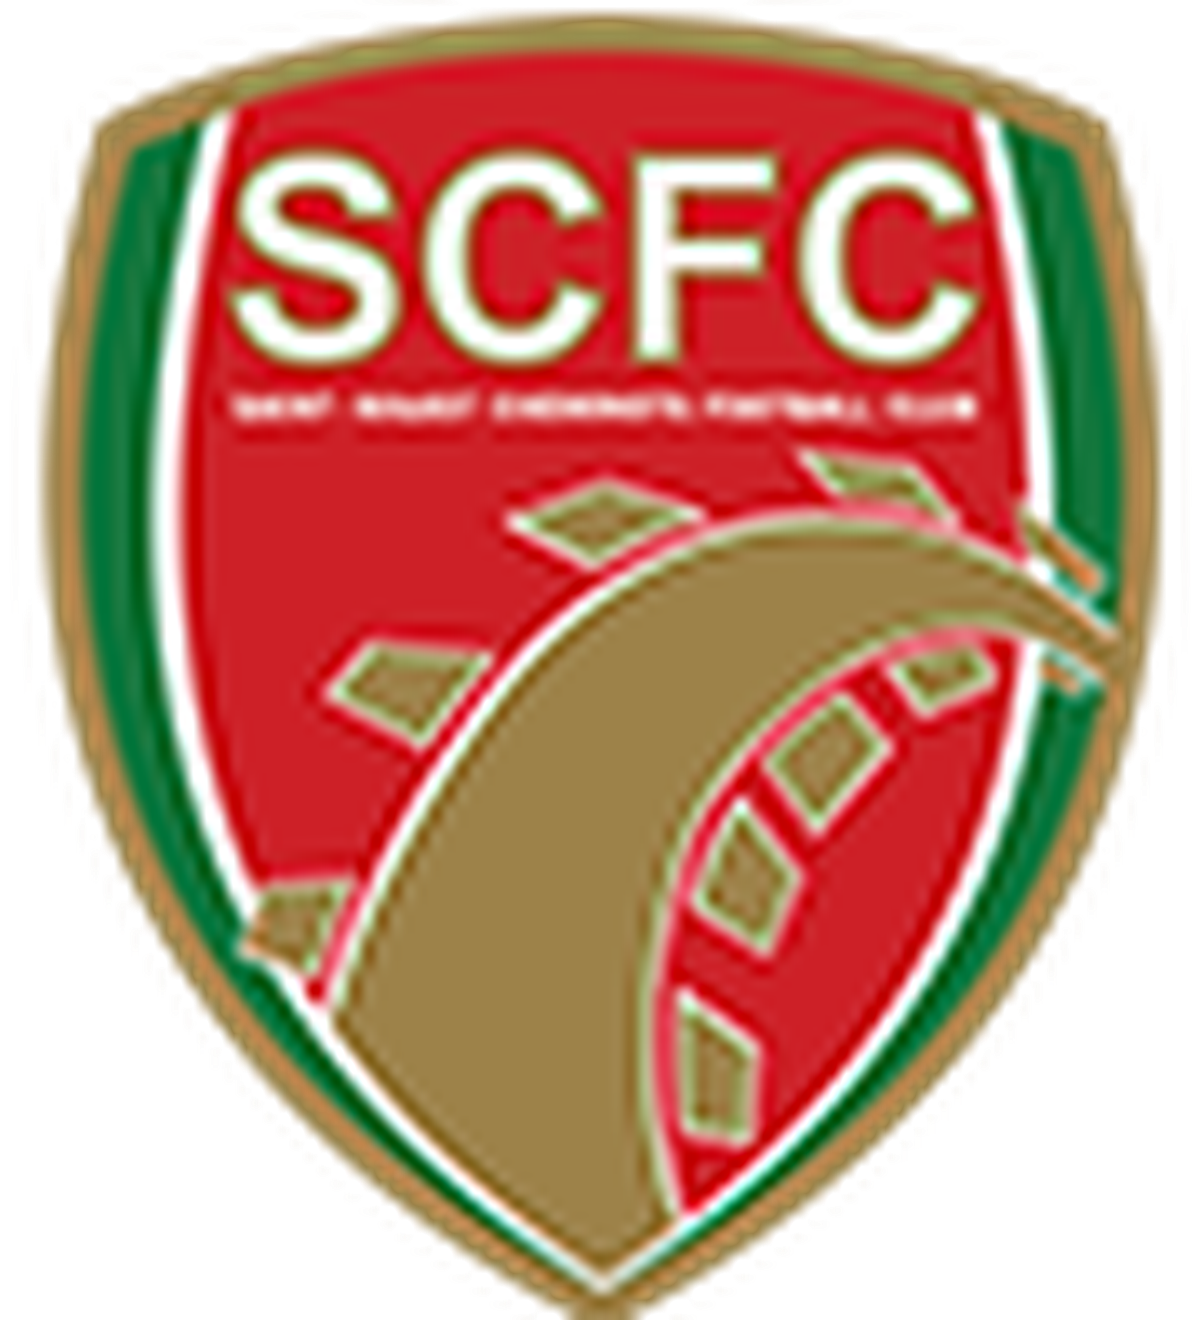 logo du club Saint-waast Cheminots Football Club